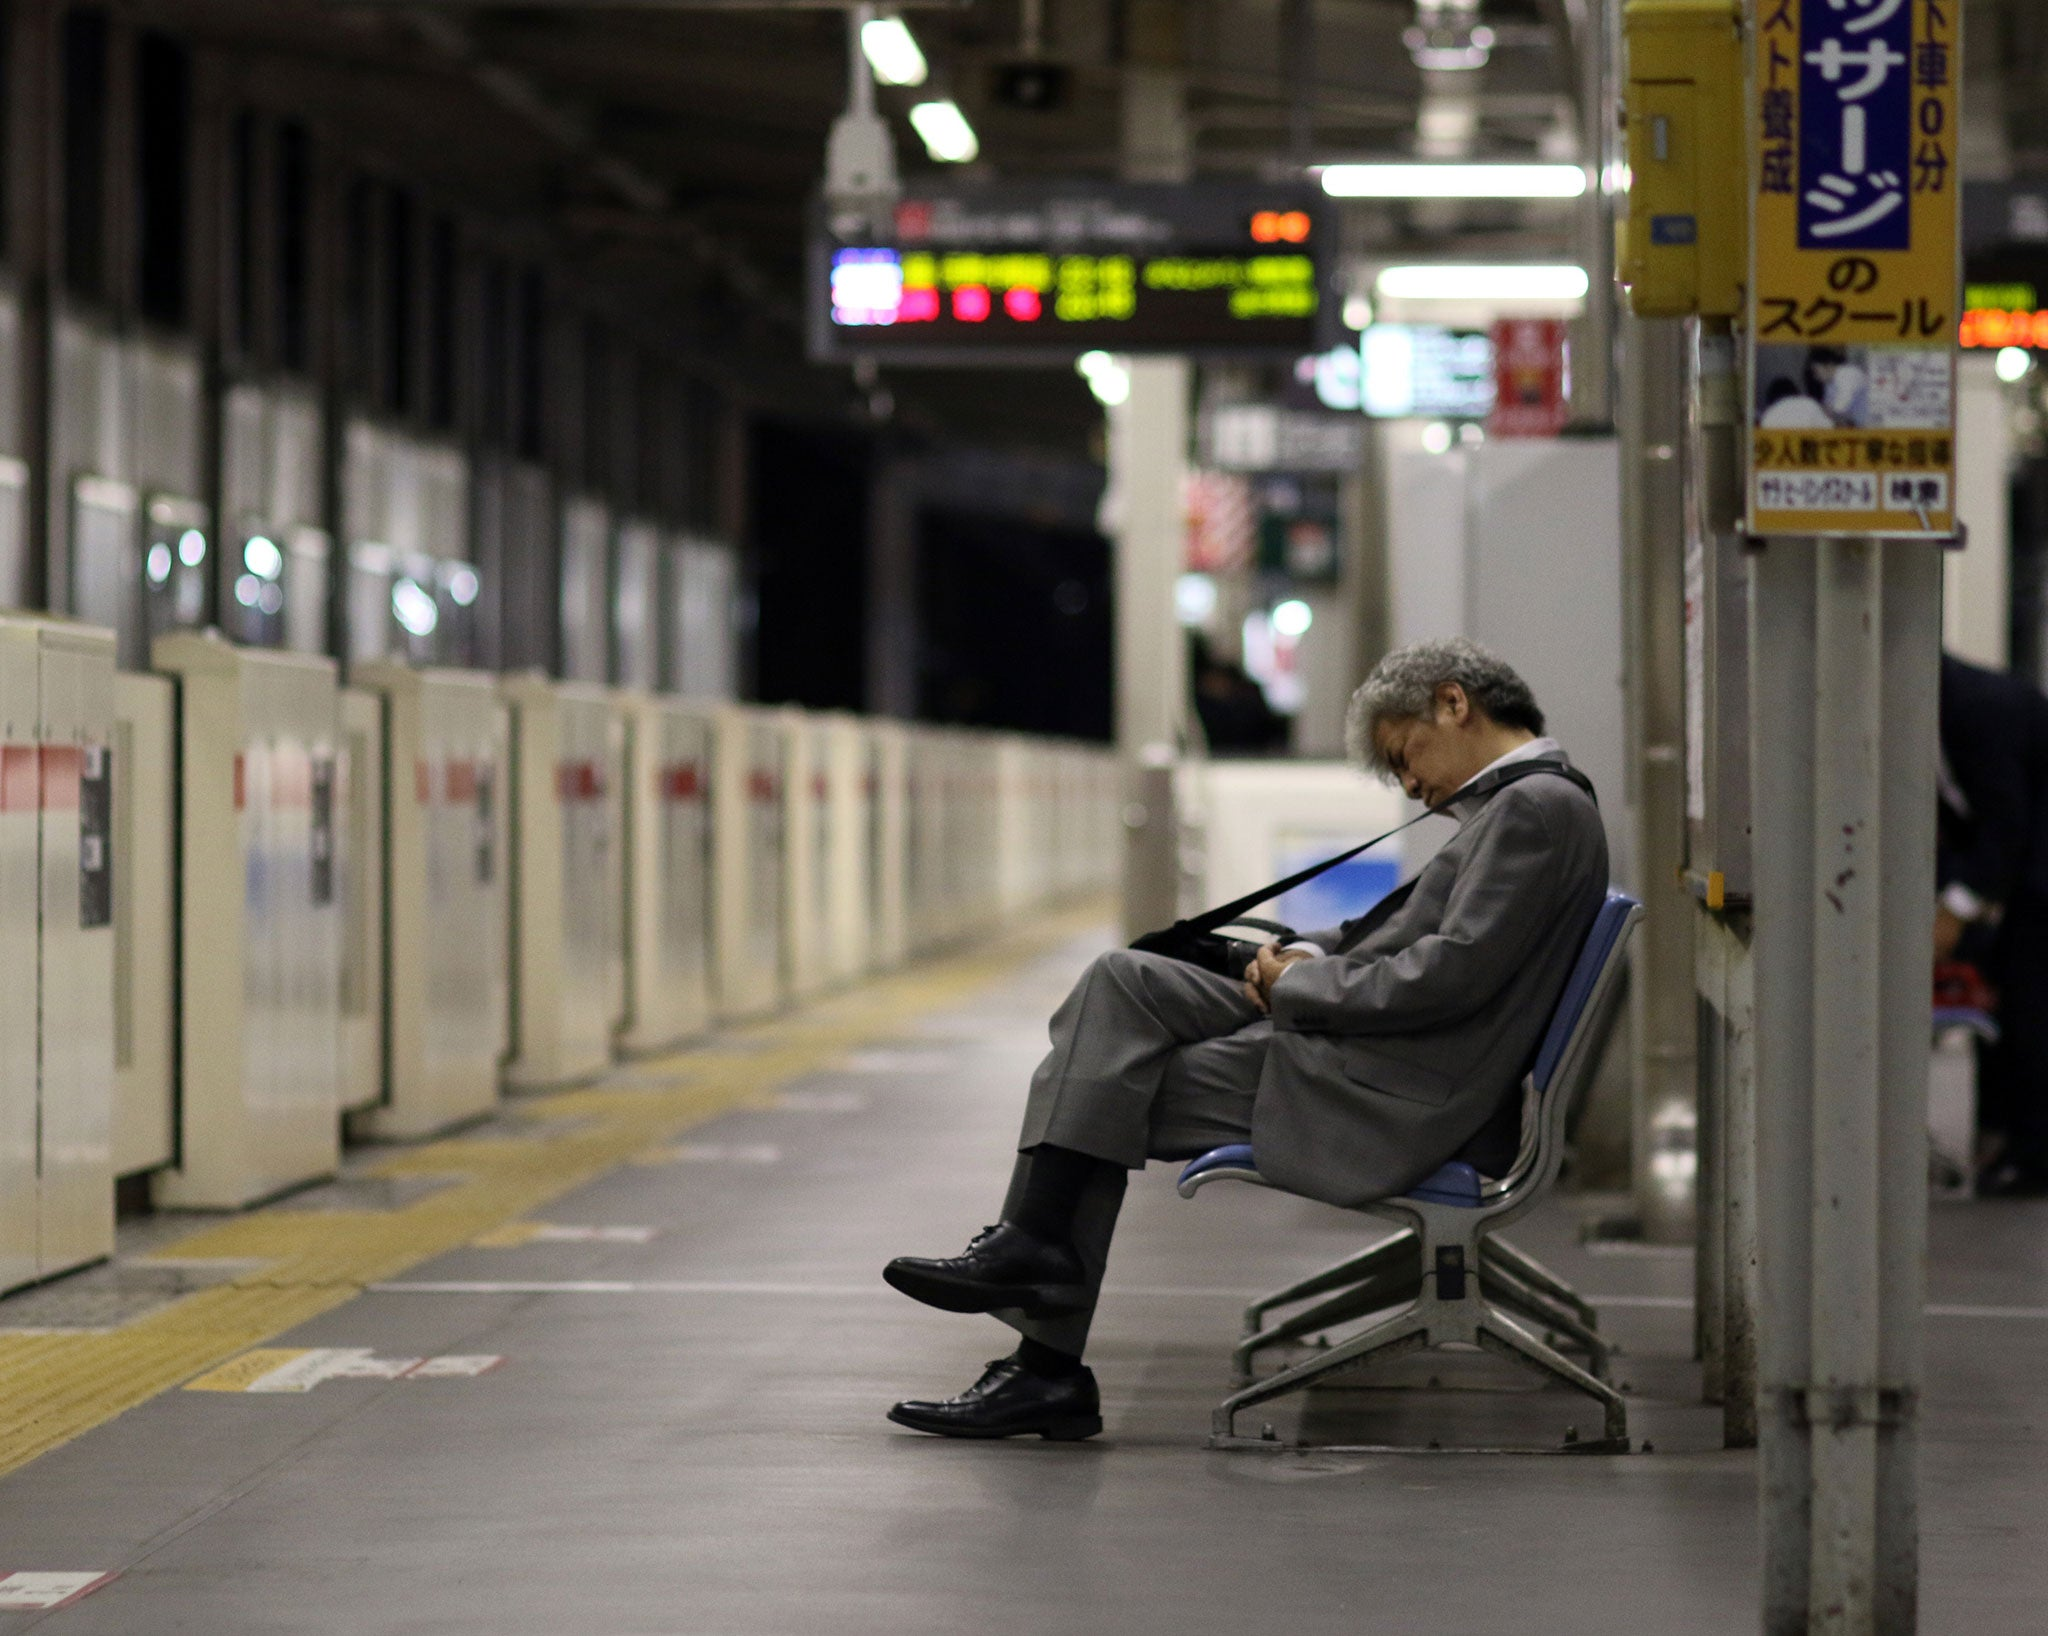 32,000 people in Japan turned 100 this year and the economy can't keep up